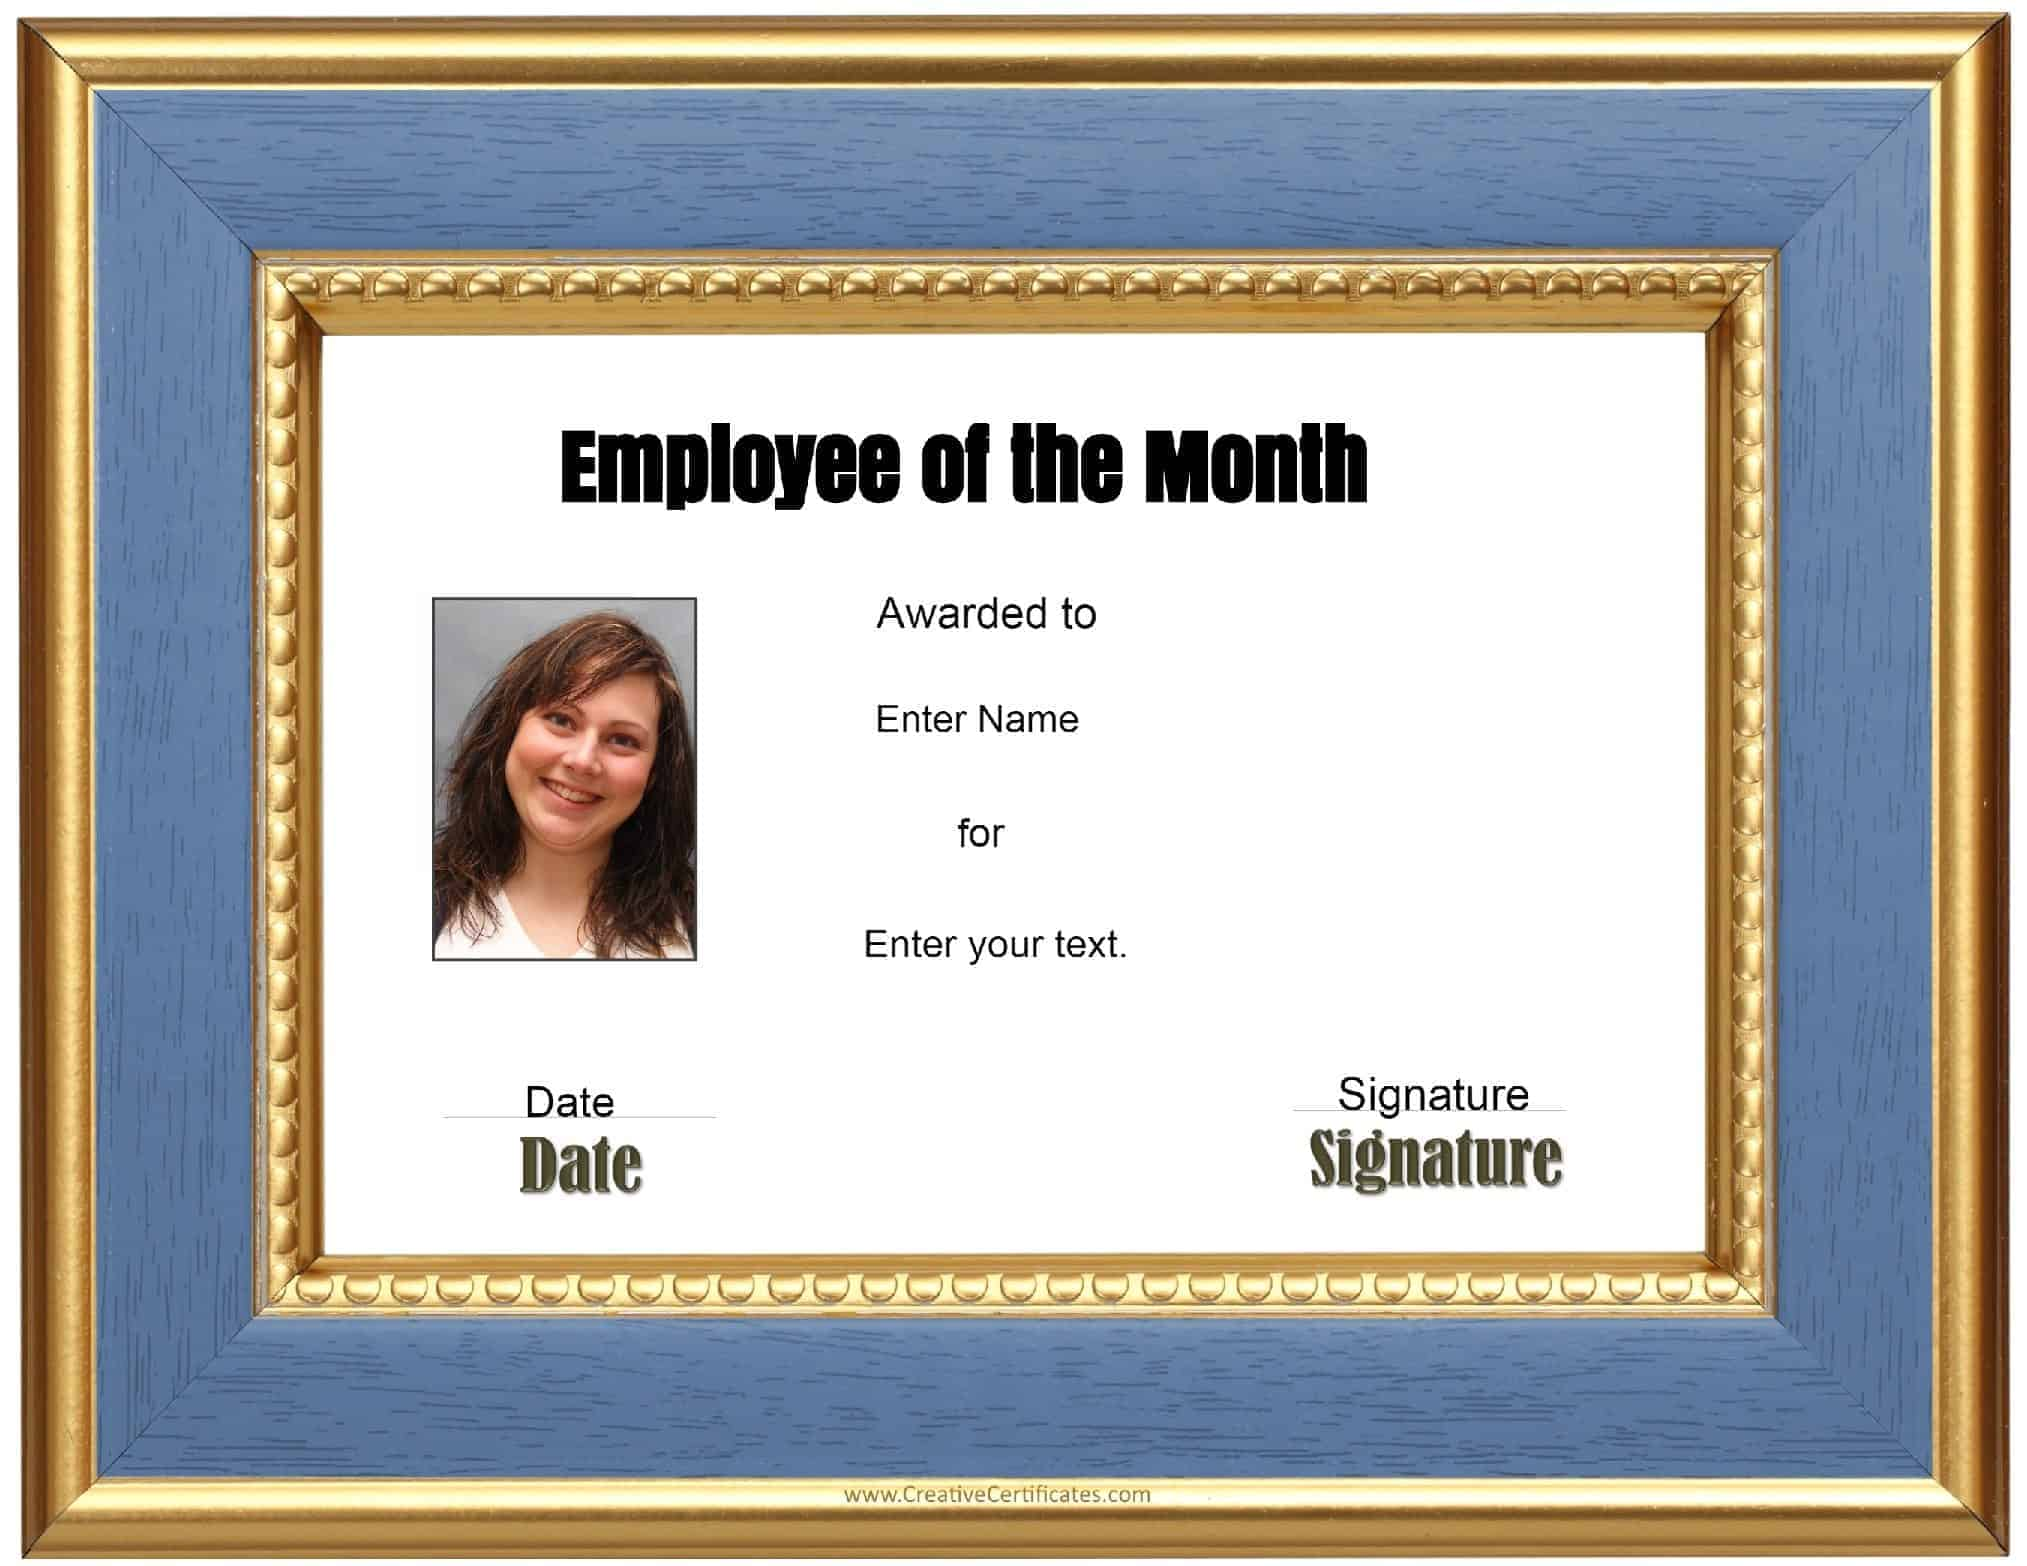 Tactueux image intended for employee of the month printable certificate